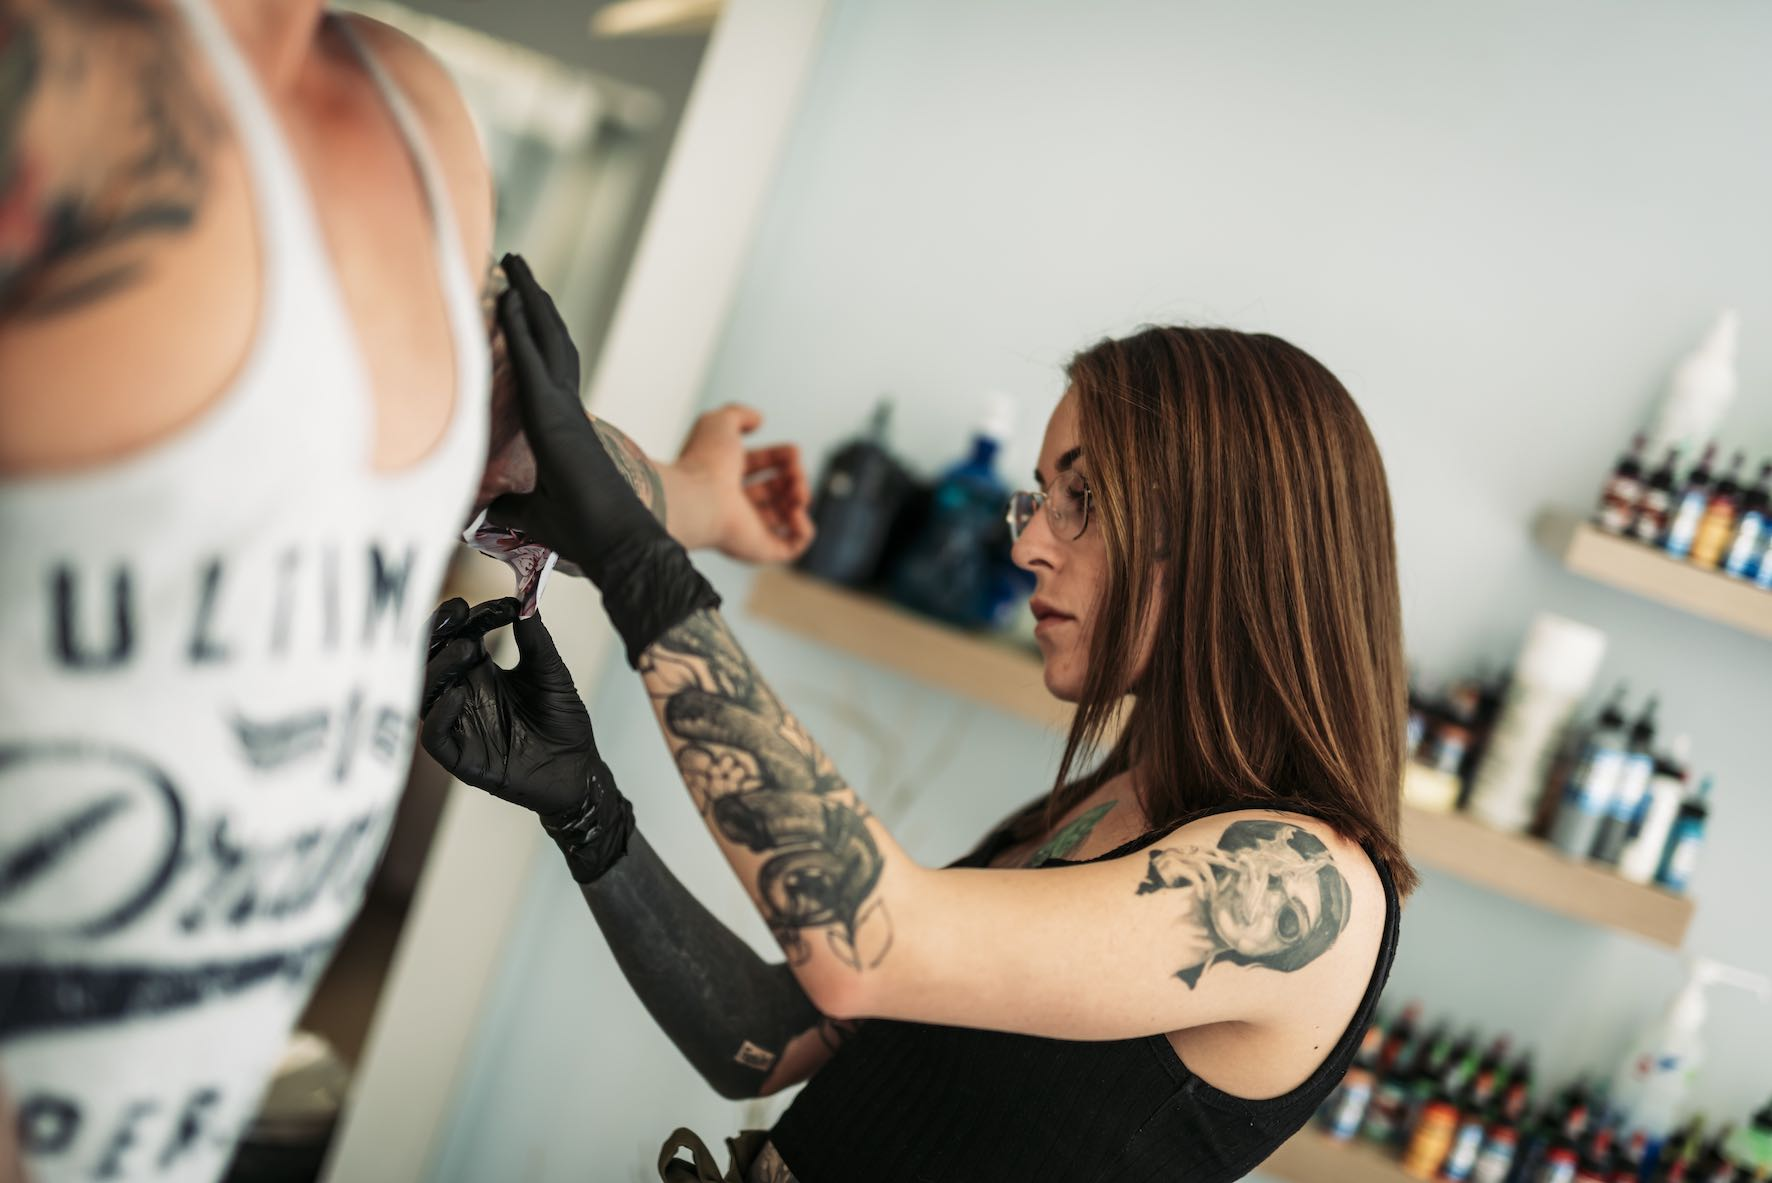 Exclusive interview with Tattoo Artist Lileen van den Berg working out of Artrageous Tattoos